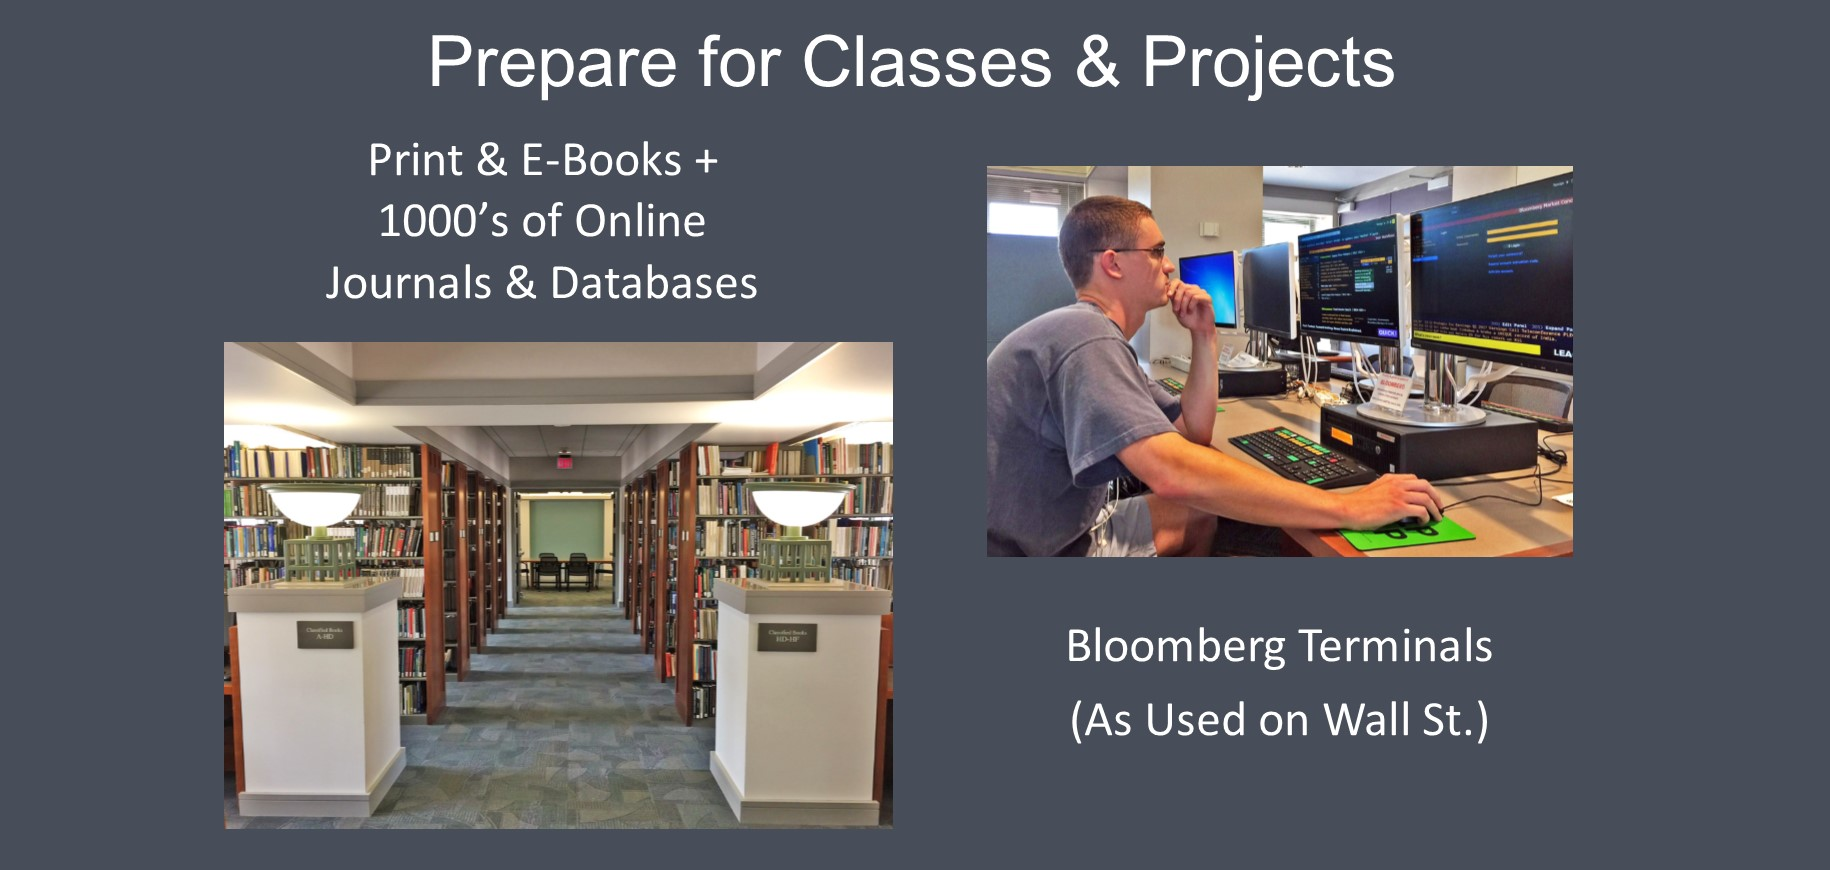 Prepare for classes and projects